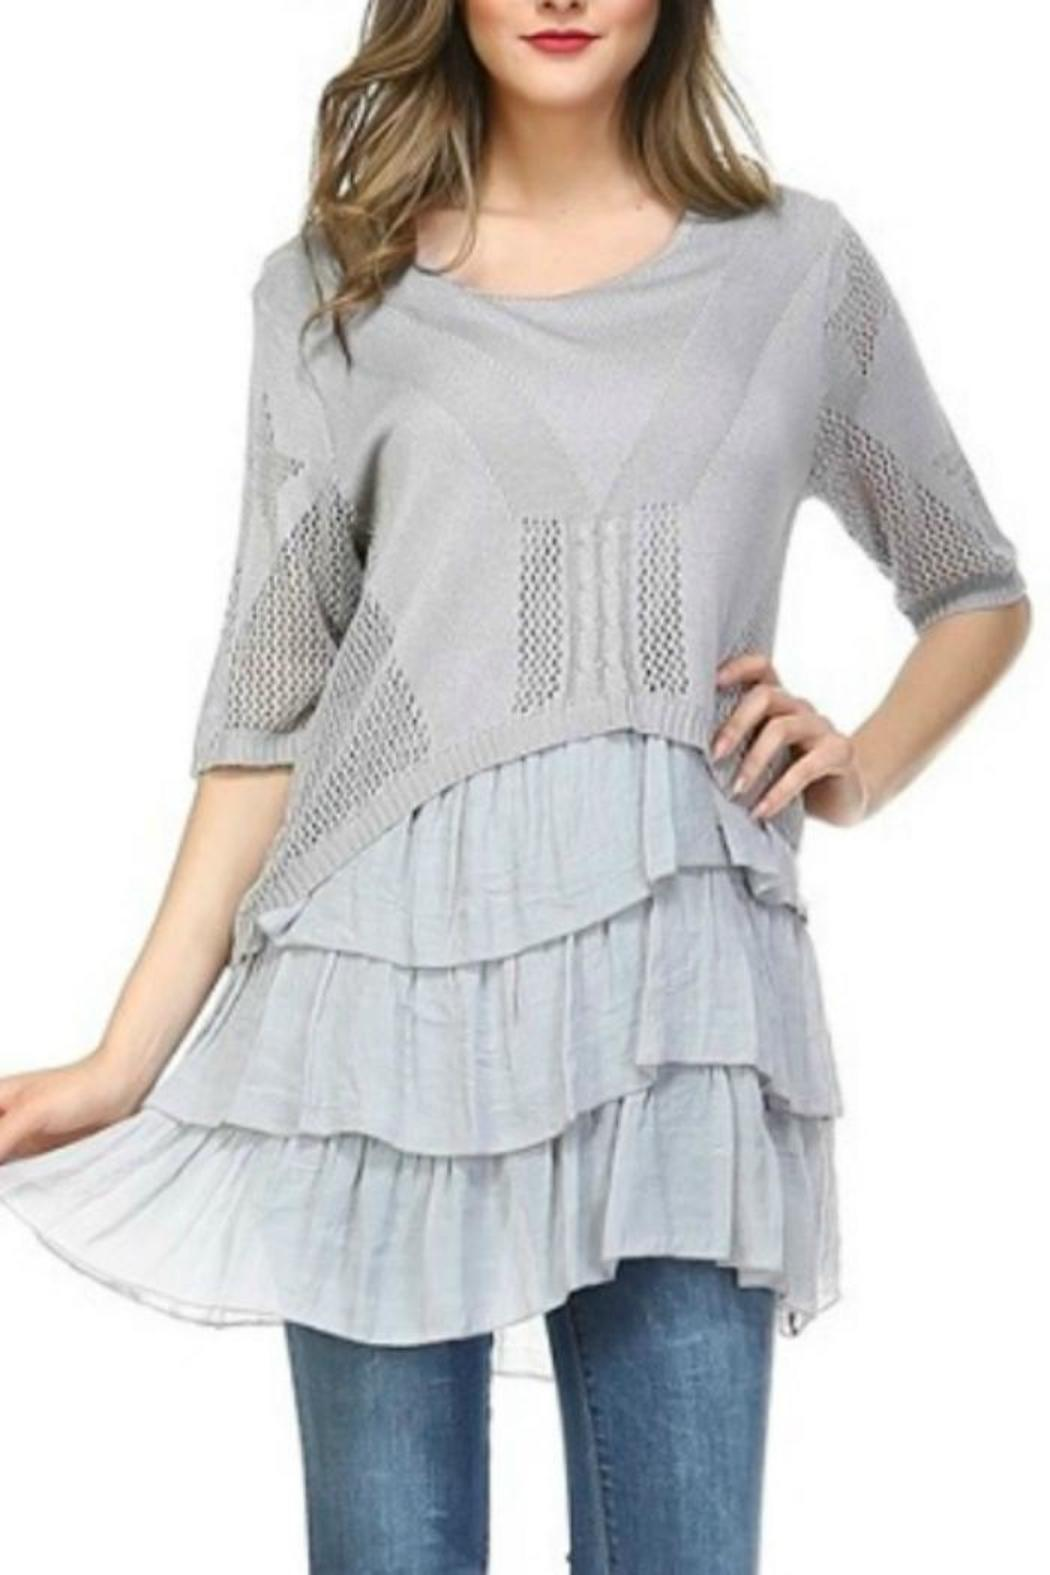 Selfie Couture Layered Knit Top Dress - Main Image